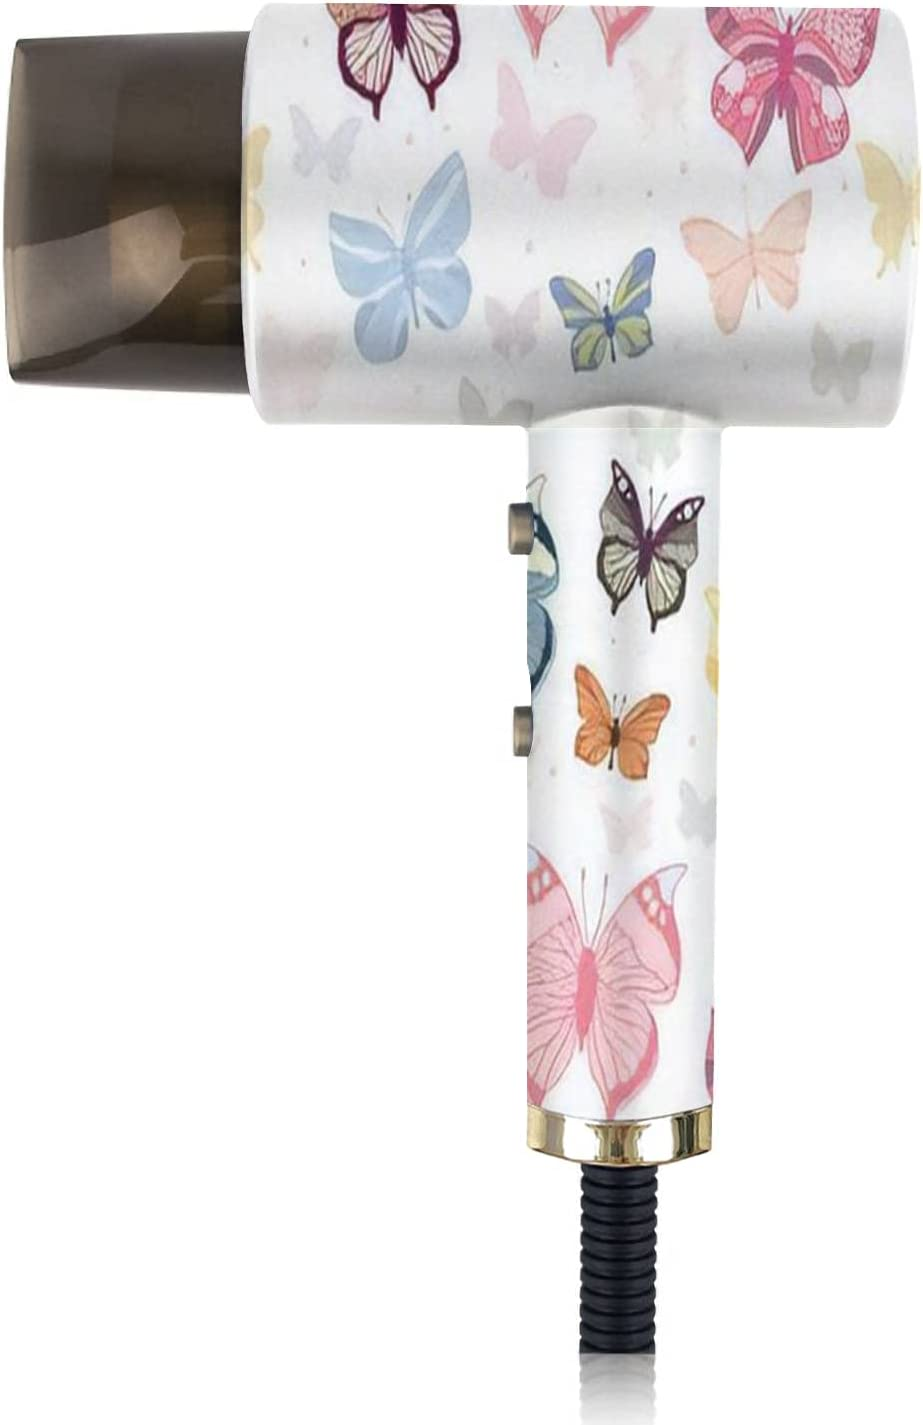 Ionic Hair Don't miss the campaign 70% OFF Outlet Dryer Pattern with Colorful Butterflies Ligh Portable